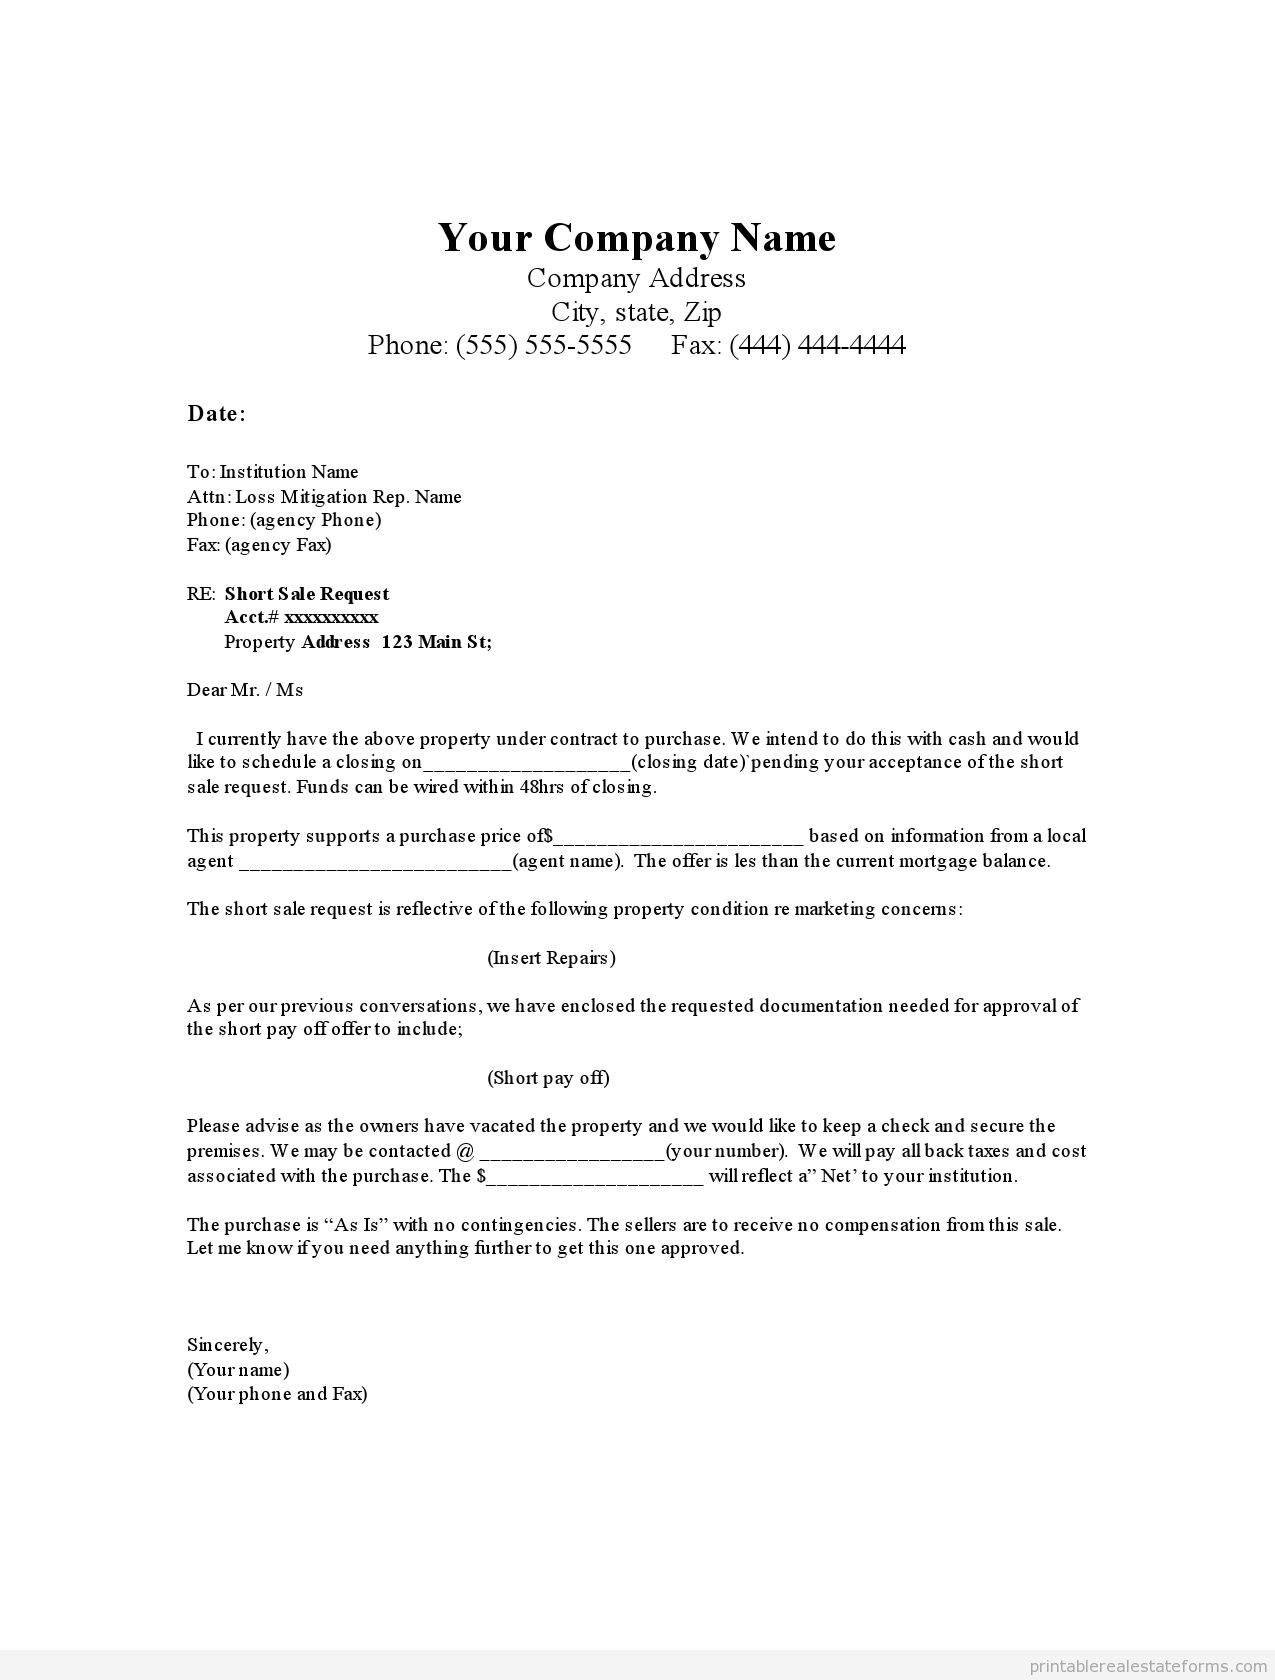 Real Estate Offer Letter Template Free - Home Fer Letter Template Home Fer Letter Sample Ideas